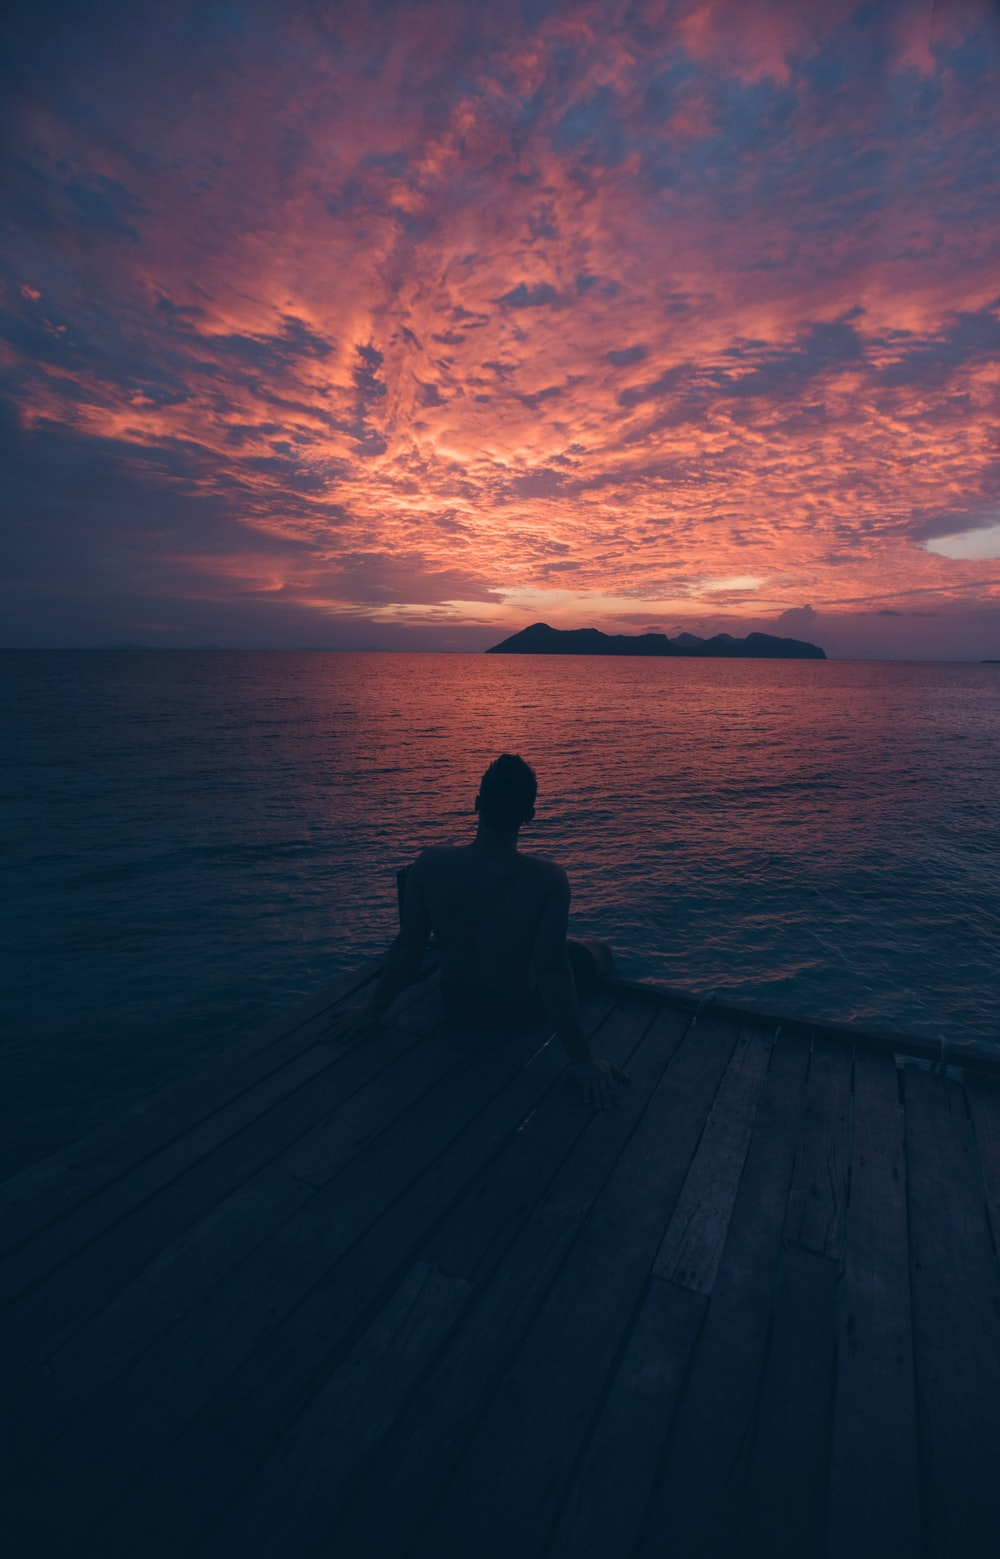 person sitting on beach dock during sunset